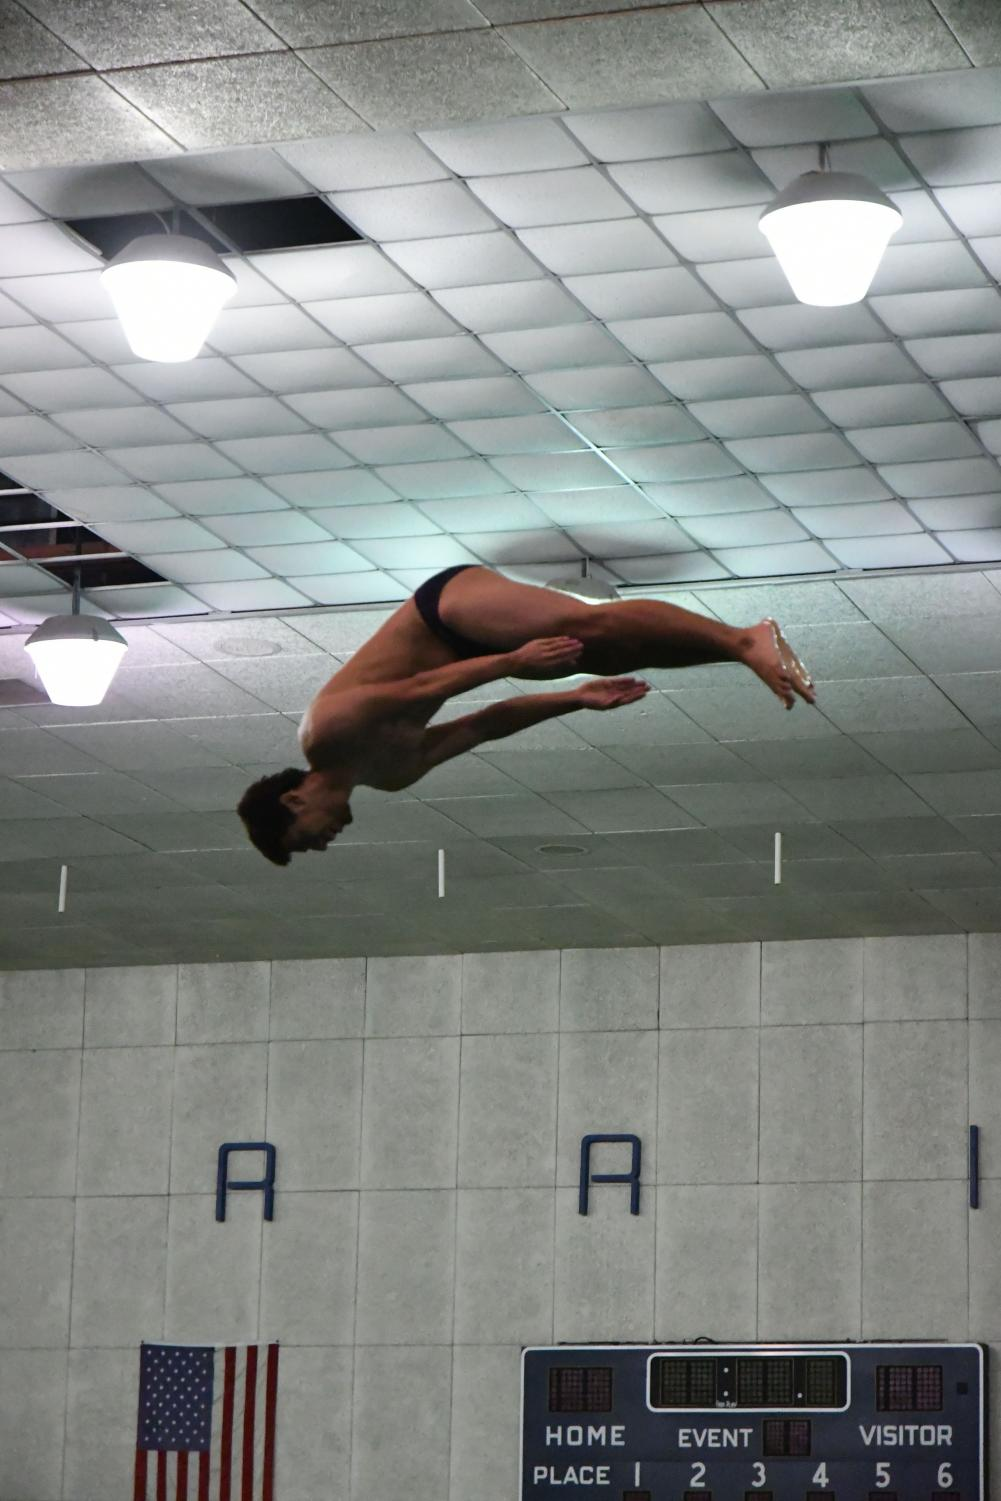 Taylor Trejo of the EC Warriors men's diving team performing a dive during the South Coast Conference Diving Invitational on Saturday, March 23 at the EC Pool. Trejo is one of many Warriors divers competing at this year's Southern California Diving Championships. Photo credit: Jun Ueda